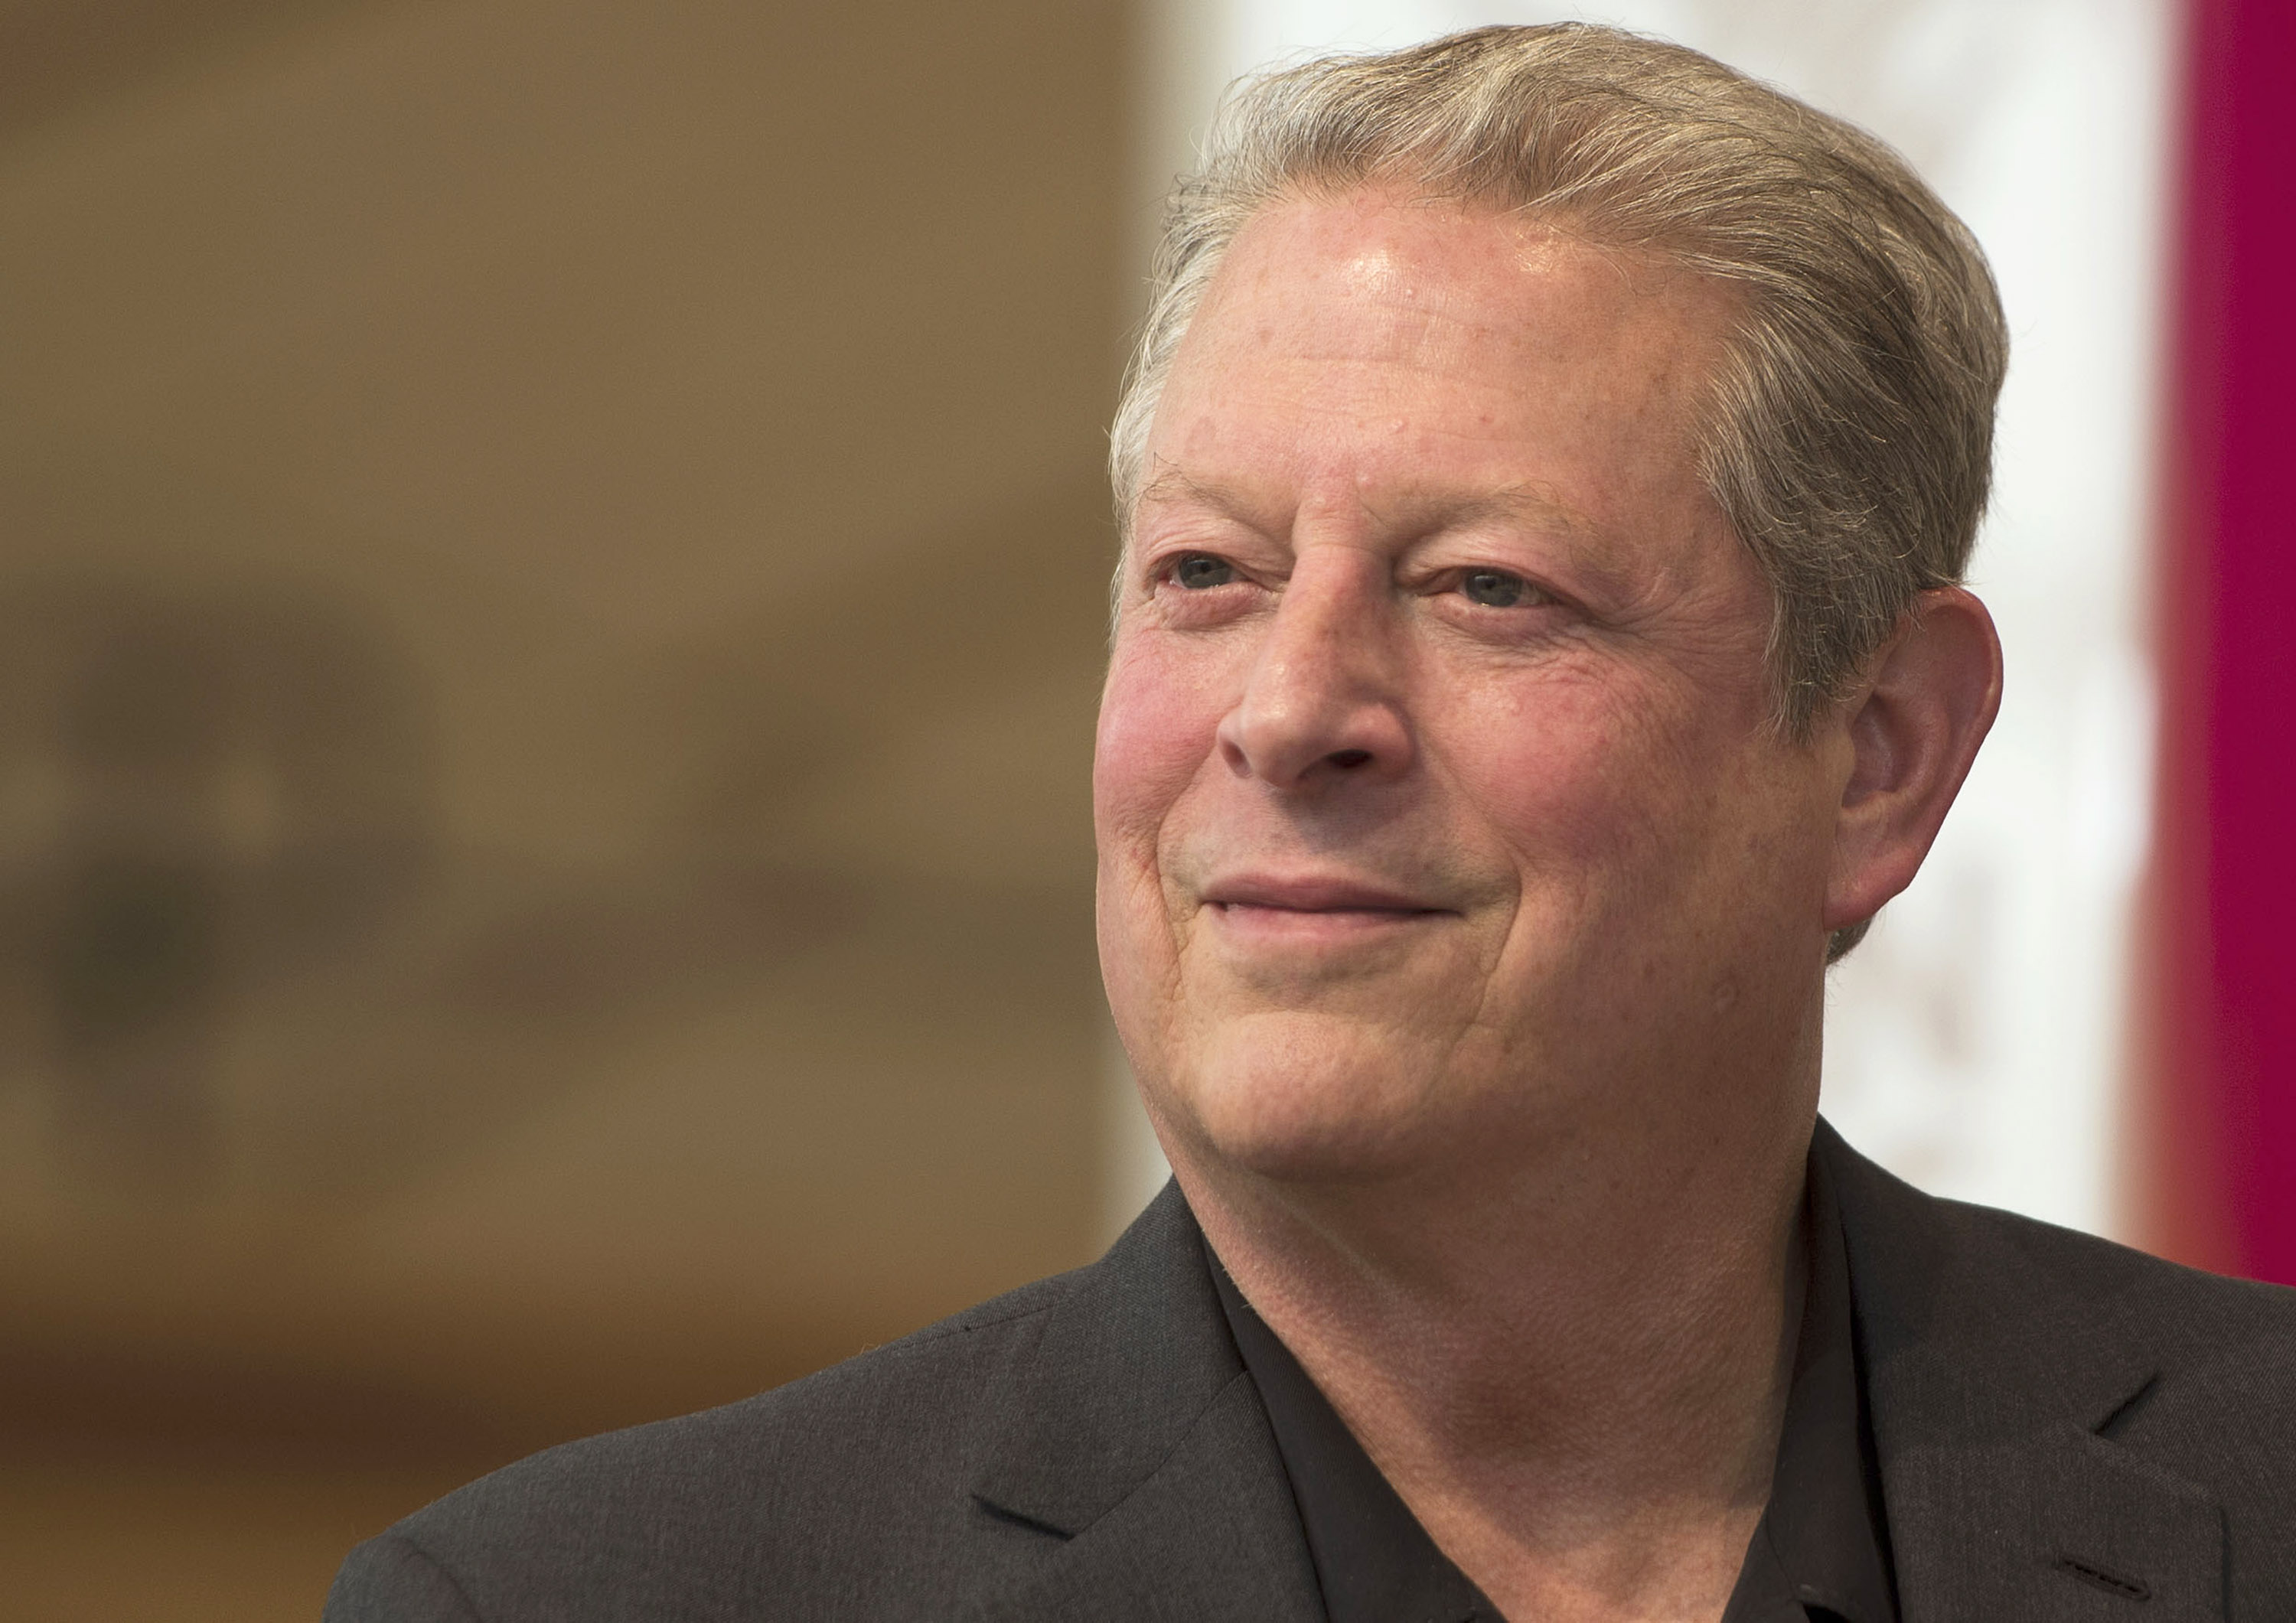 The CDC canceled a climate change event. Al Gore will host it instead.